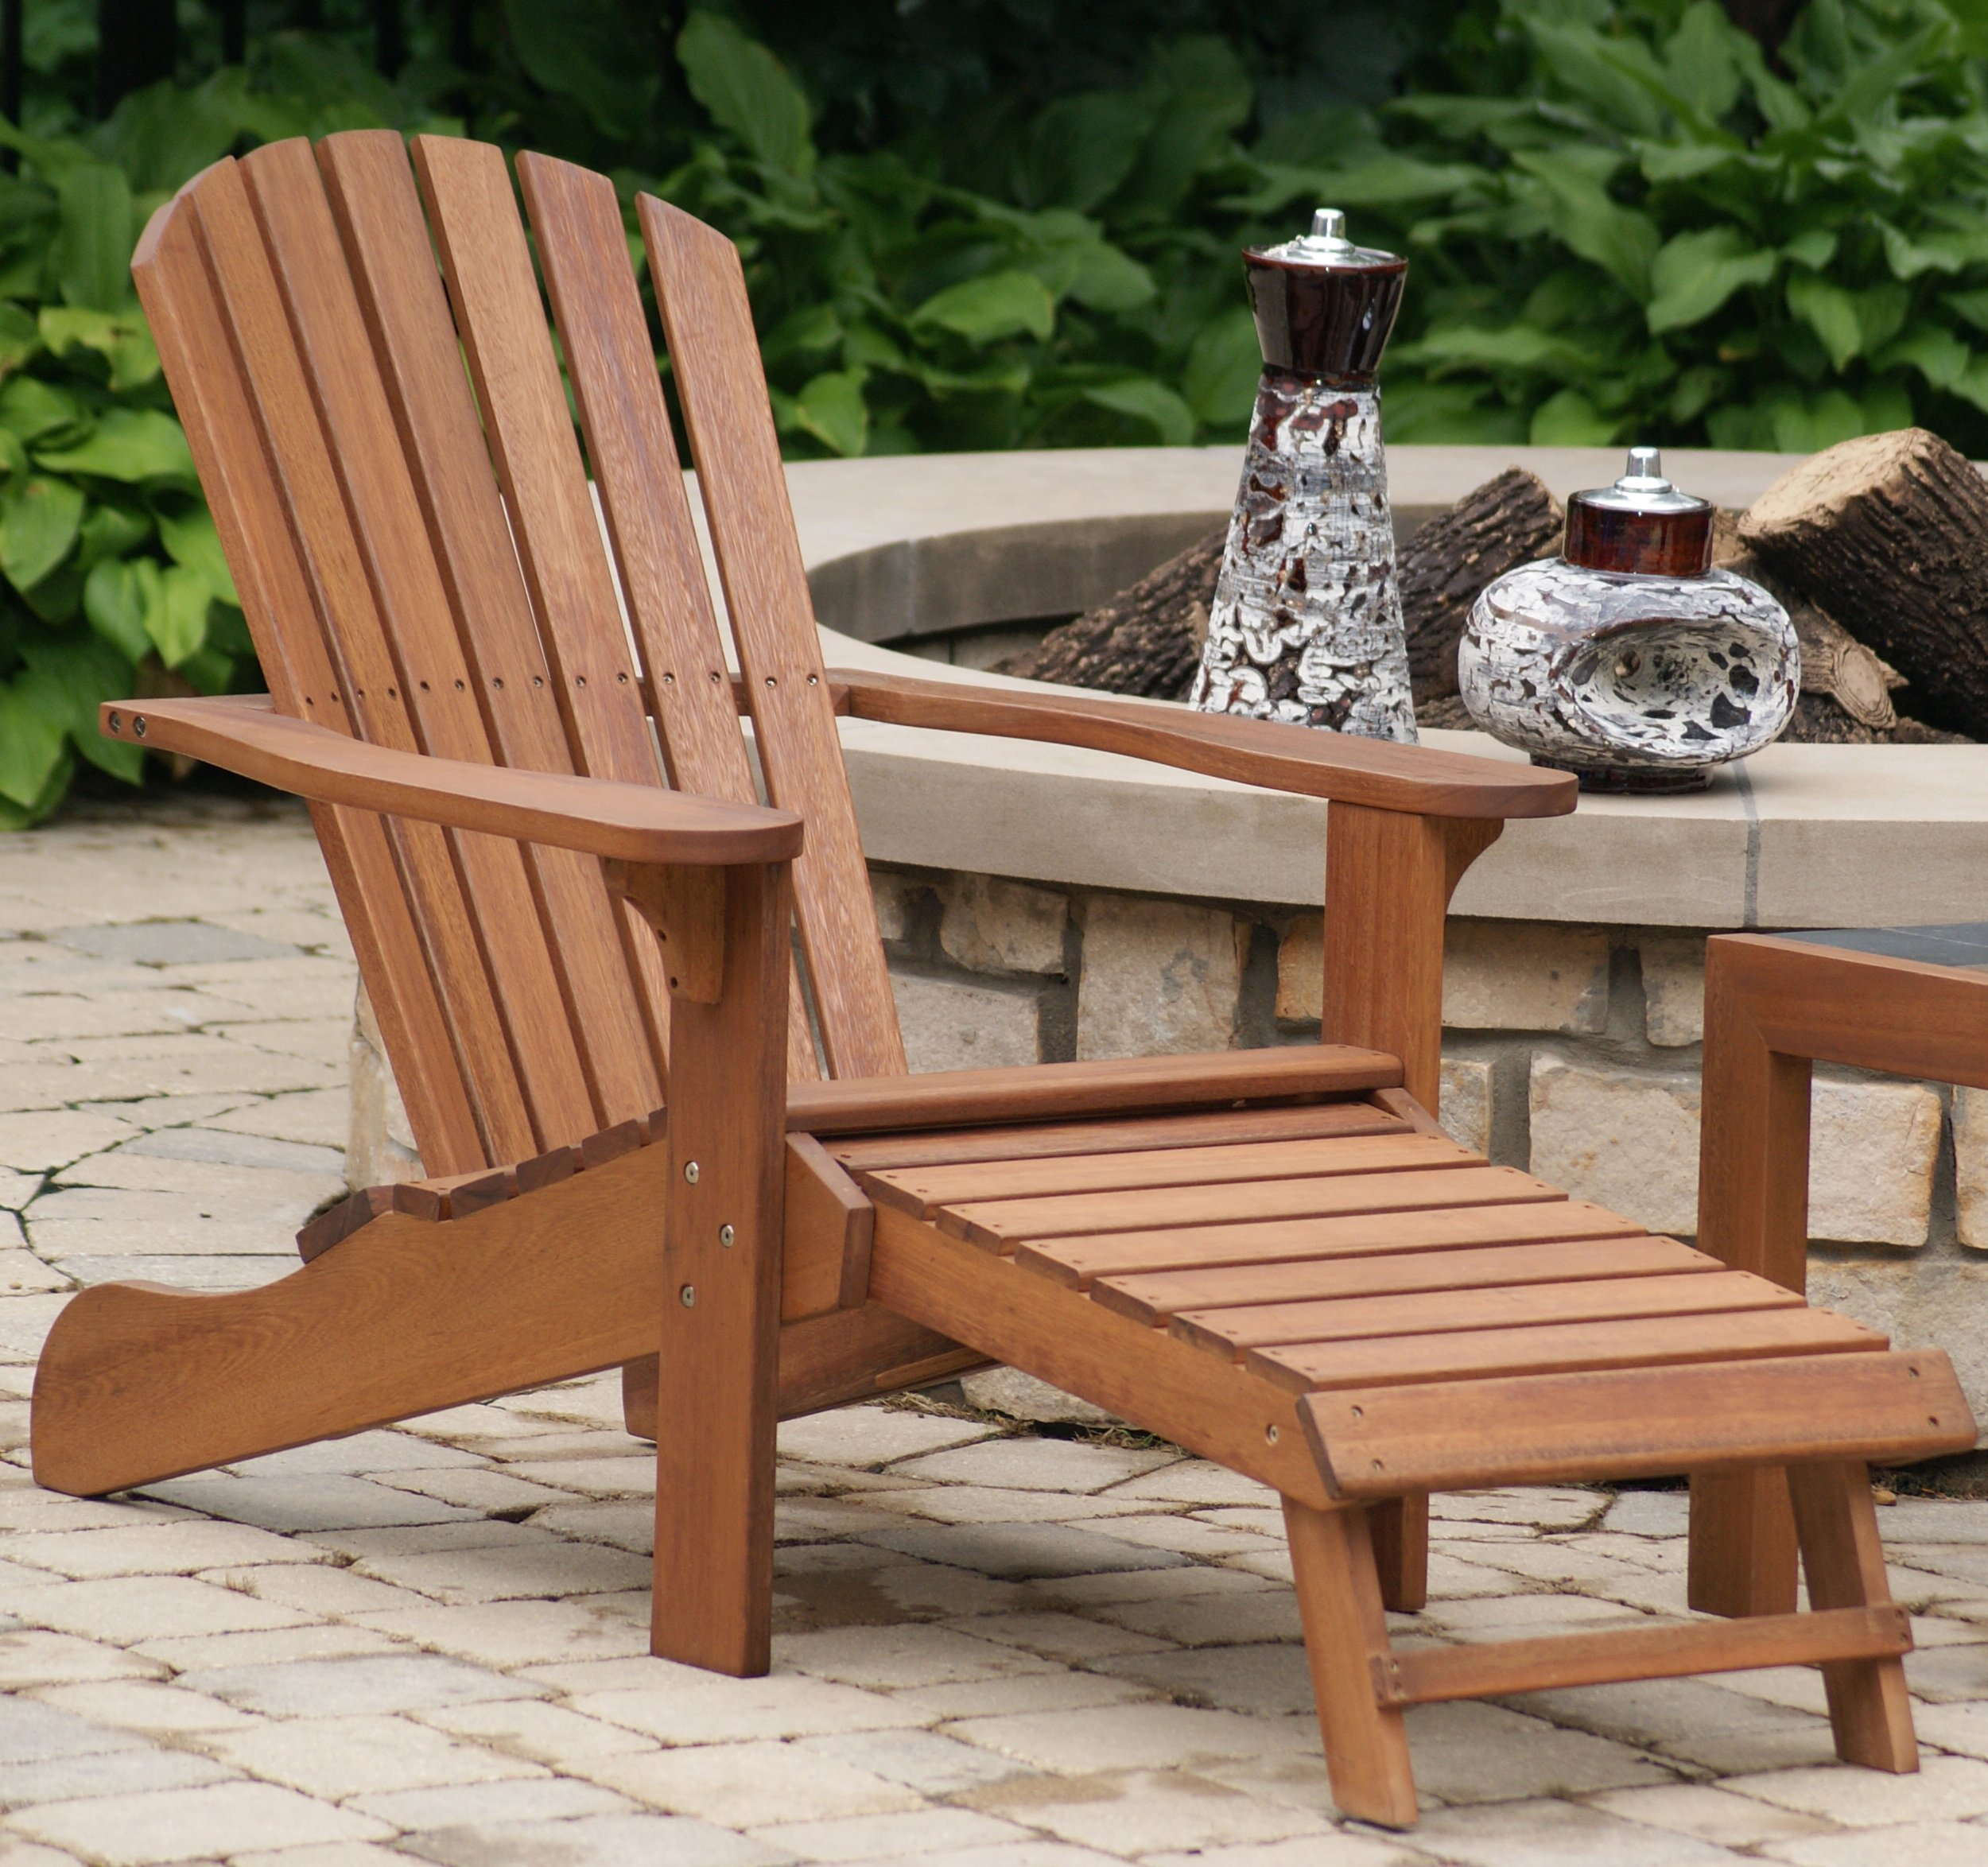 Outdoor Interiors CD3111 Eucalyptus Adirondack Chair and Built In Ottoman by Outdoor Interiors (Image #4)